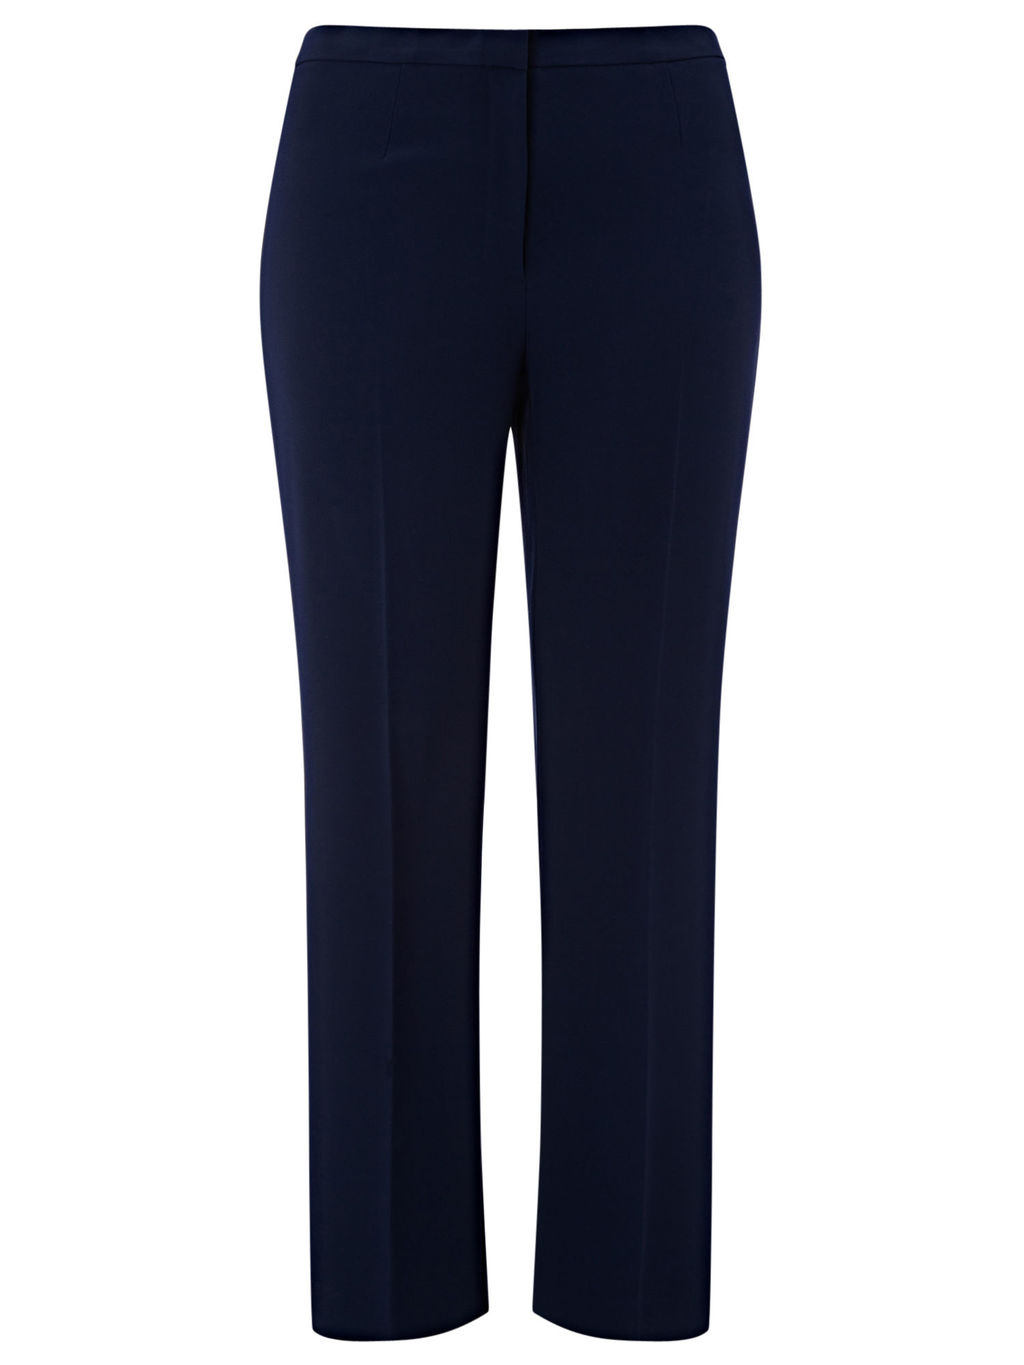 Standard Leg Trousers, Navy - length: standard; pattern: plain; waist: mid/regular rise; predominant colour: navy; occasions: work, creative work; fibres: polyester/polyamide - 100%; fit: straight leg; pattern type: fabric; texture group: woven light midweight; style: standard; season: s/s 2016